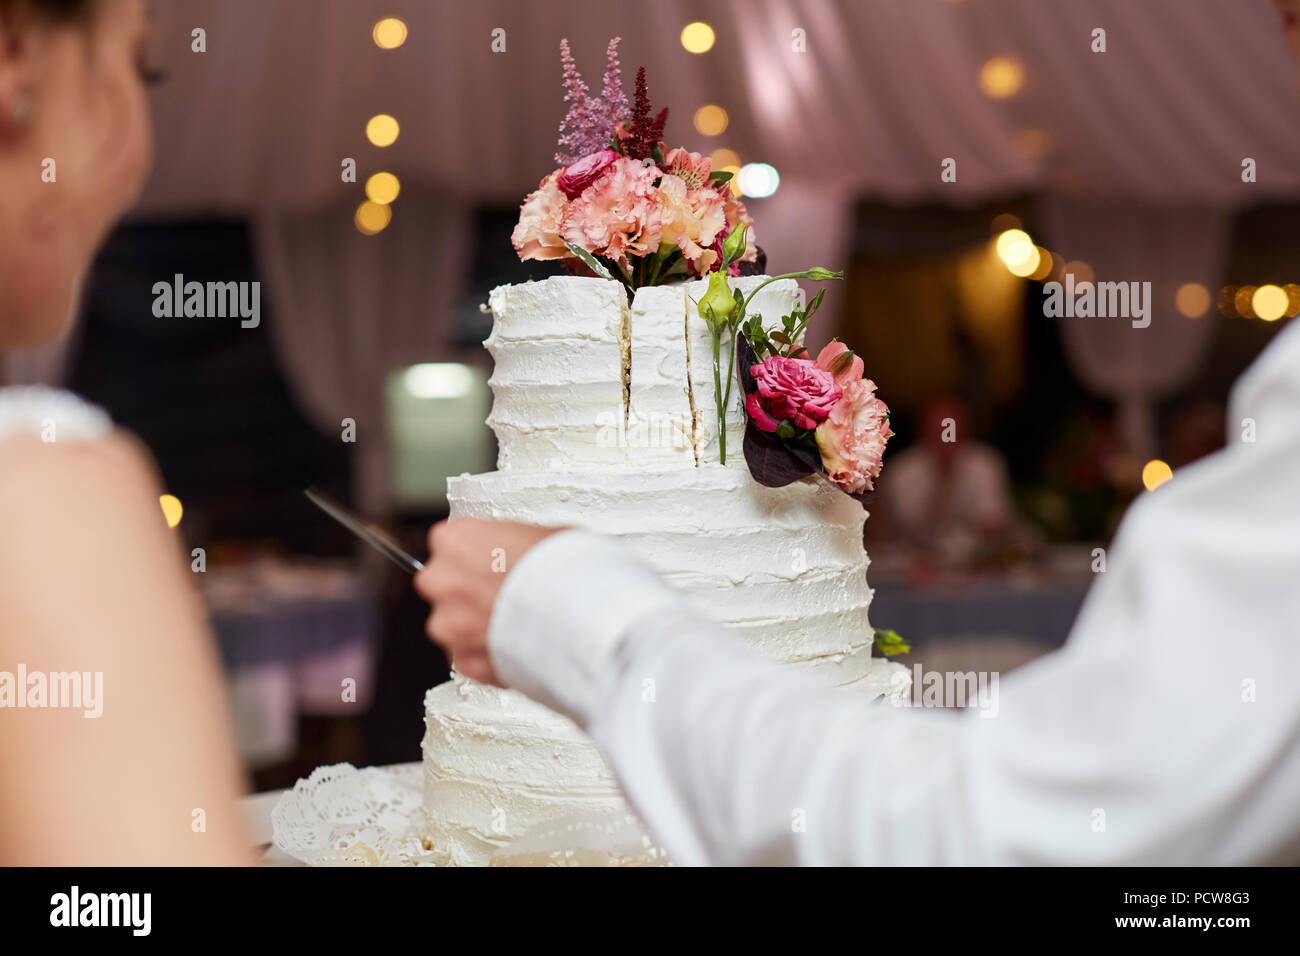 Bride and Groom at Wedding Reception Cutting the Wedding Cake - Stock Image